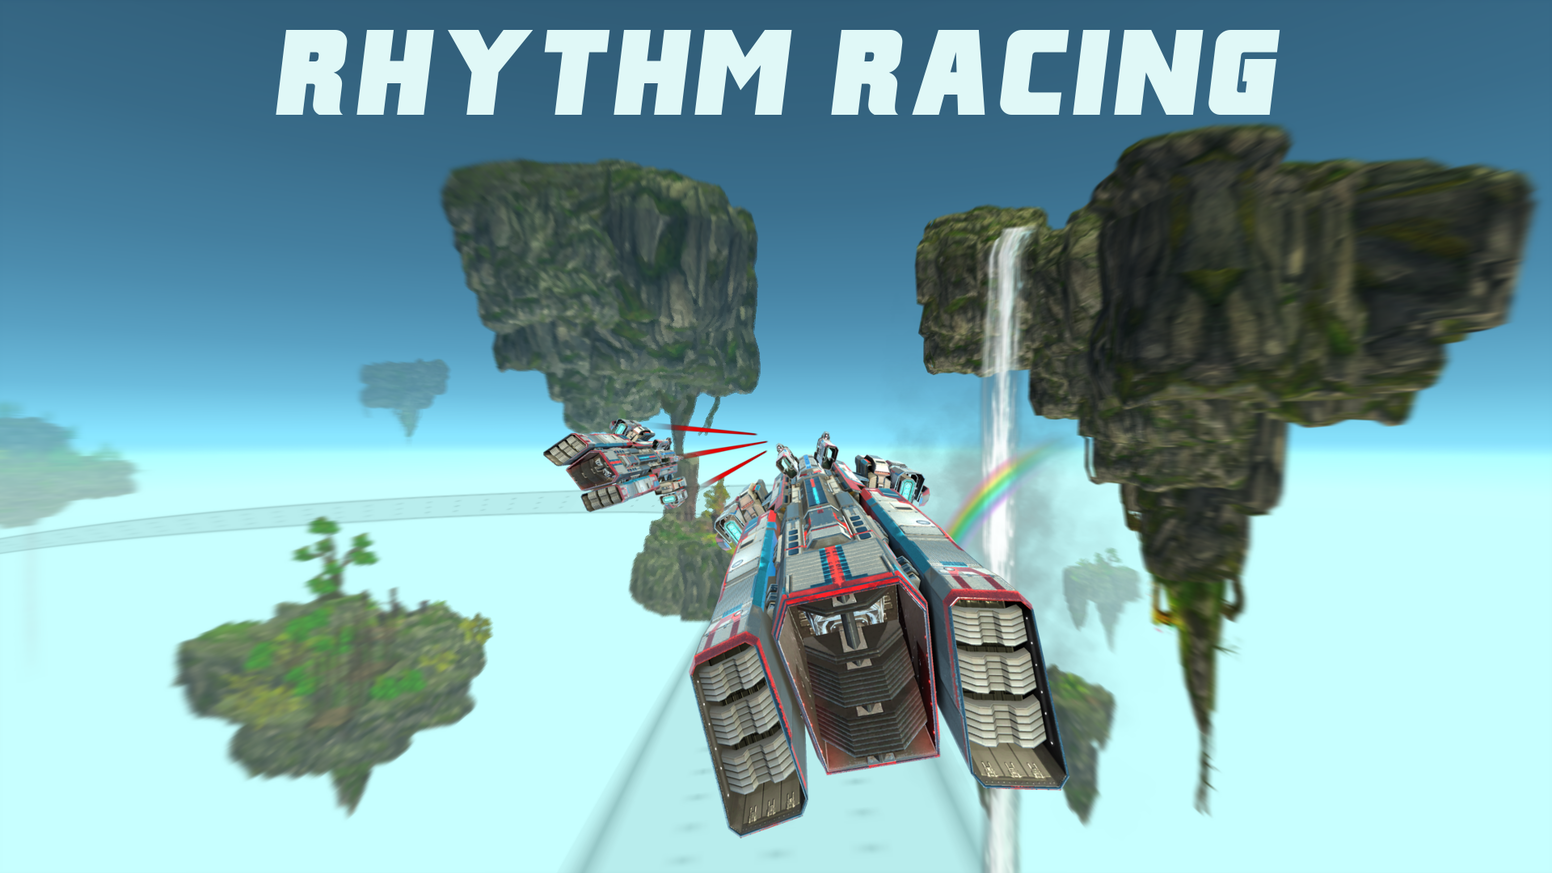 Fly through fantastical futuristic worlds in time to the music in this unique blend of Rhythm and Racing games